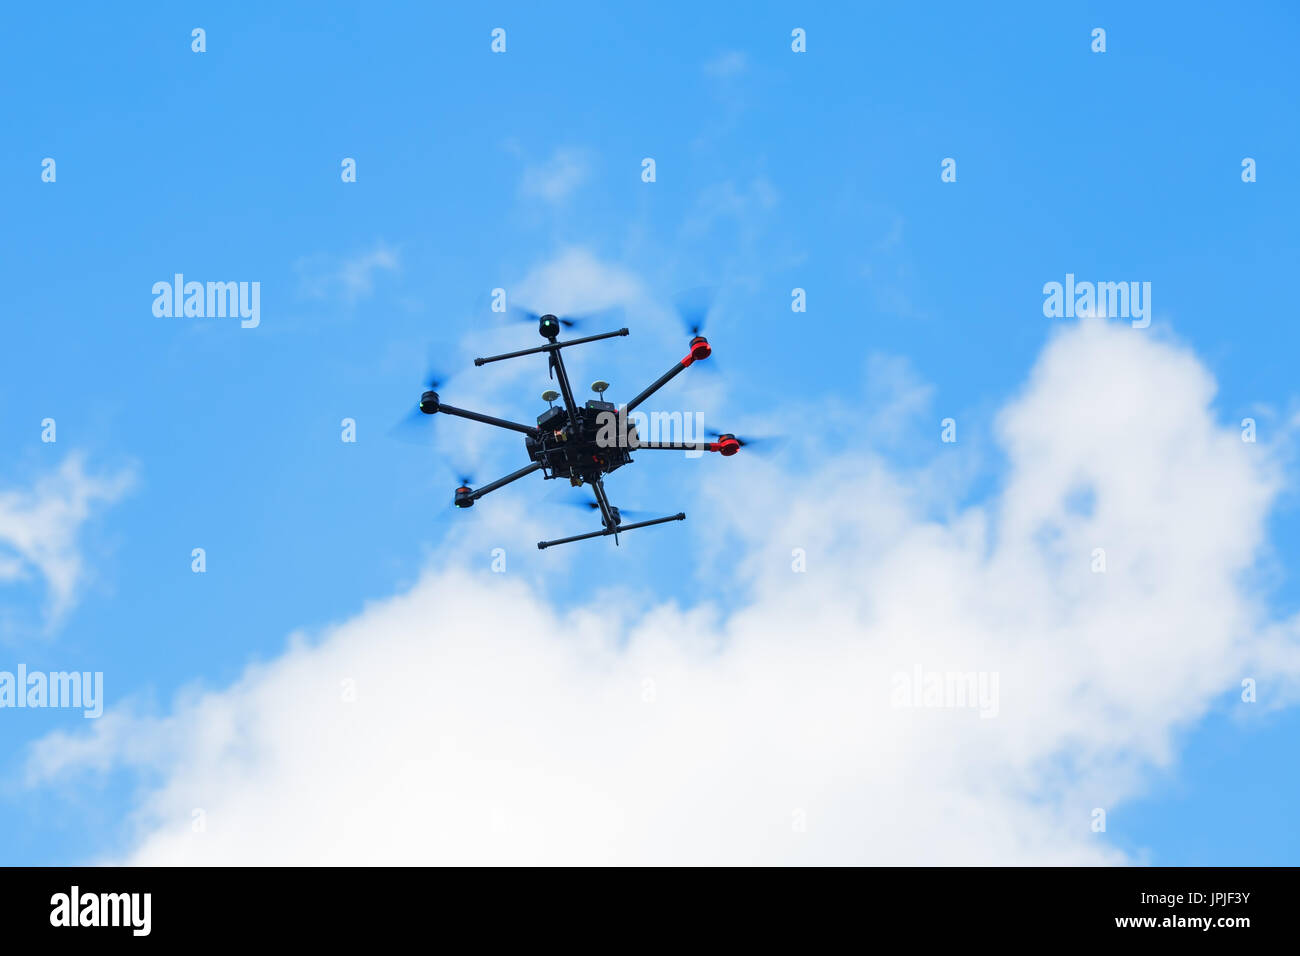 Flying hexacopter drone against a blue sky with clouds. - Stock Image